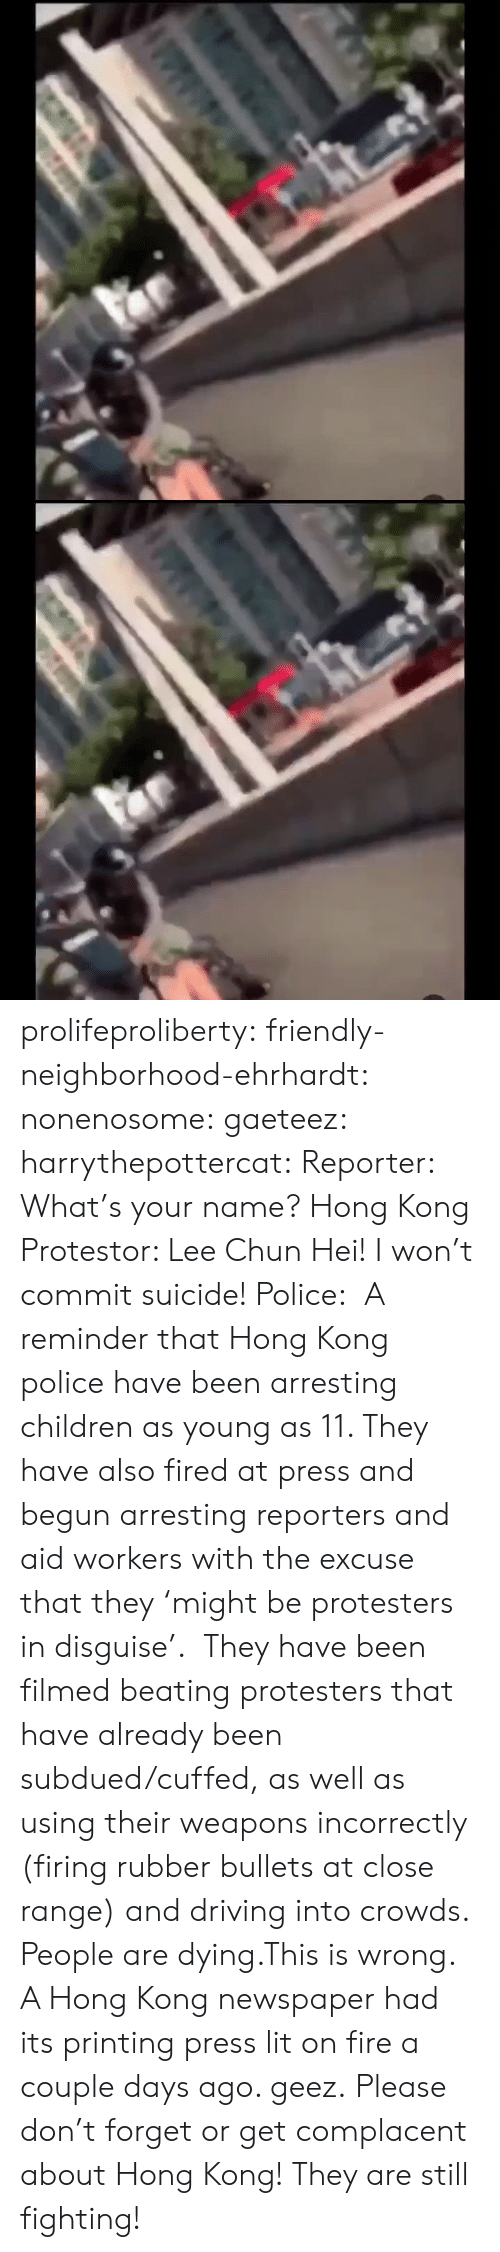 Driving: के.  ॥ल prolifeproliberty:  friendly-neighborhood-ehrhardt:  nonenosome:  gaeteez:   harrythepottercat:  Reporter: What's your name? Hong Kong Protestor: Lee Chun Hei! I won't commit suicide! Police:    A reminder that Hong Kong police have been arresting children as young as 11. They have also fired at press and begun arresting reporters and aid workers with the excuse that they 'might be protesters in disguise'.  They have been filmed beating protesters that have already been subdued/cuffed, as well as using their weapons incorrectly (firing rubber bullets at close range) and driving into crowds.  People are dying.This is wrong.    A Hong Kong newspaper had its printing press lit on fire a couple days ago.   geez.   Please don't forget or get complacent about Hong Kong! They are still fighting!